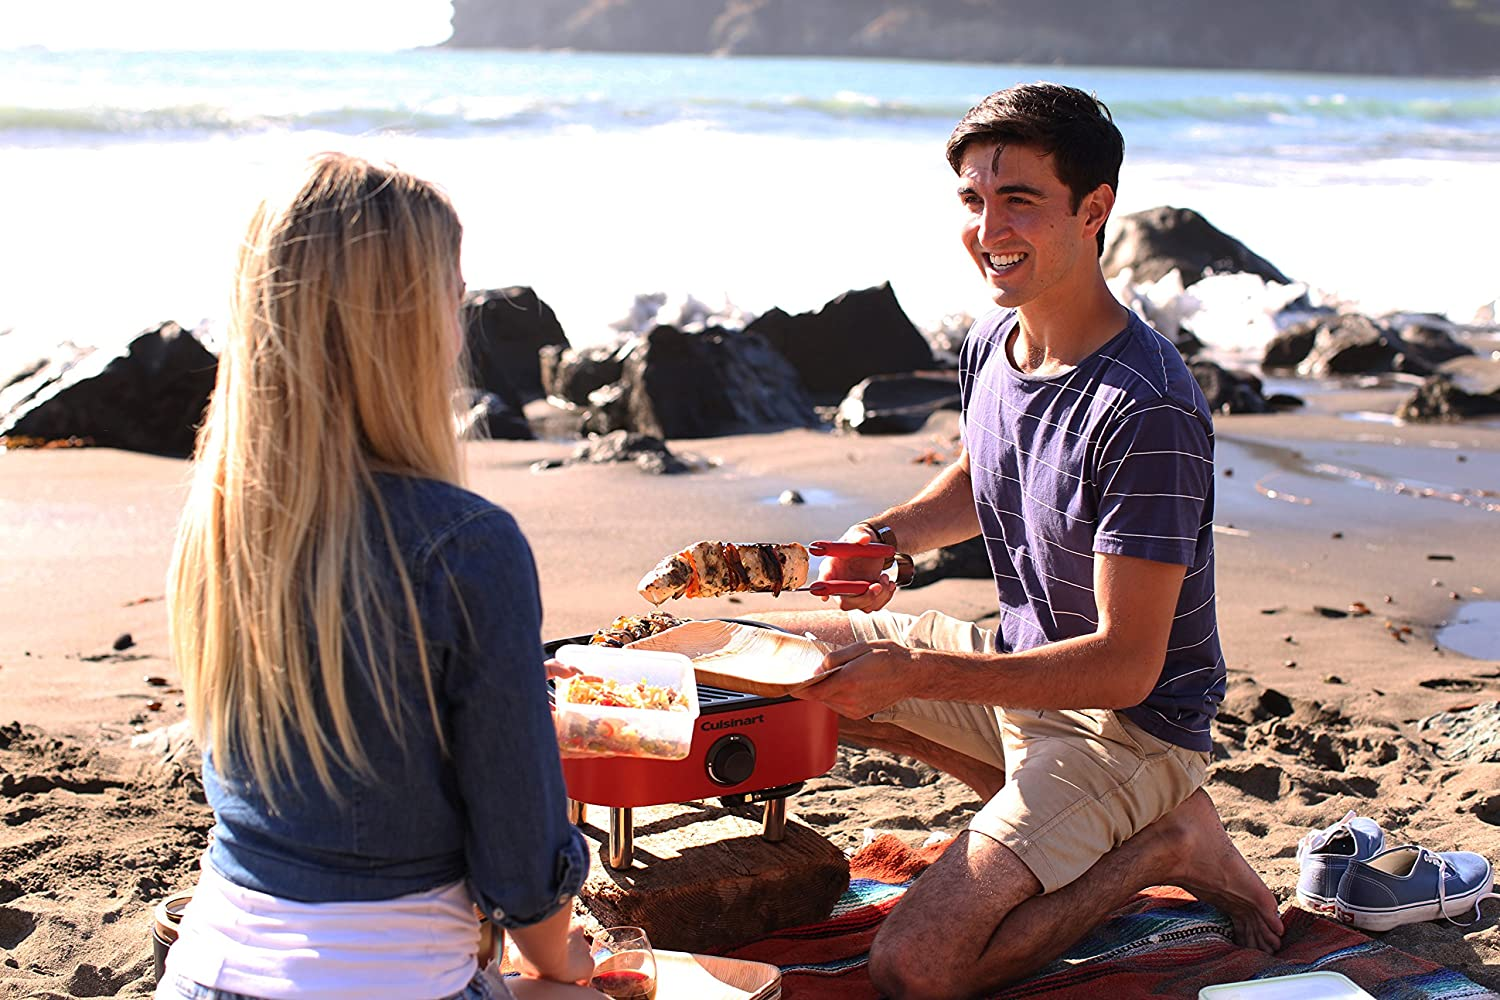 two people grilling on a beach